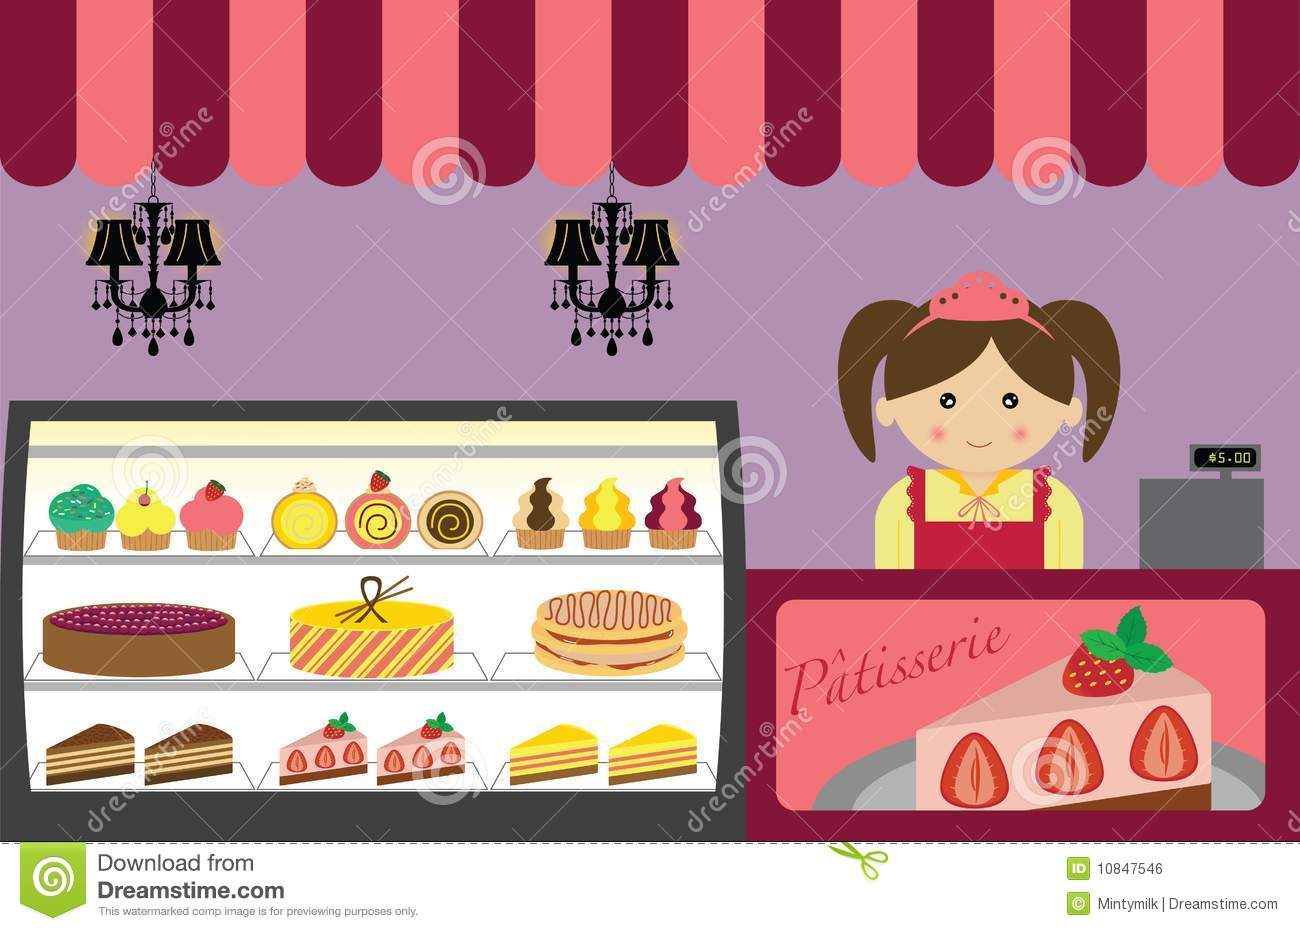 Pastry Shop Royalty Free Stock Image - Image: 10847546